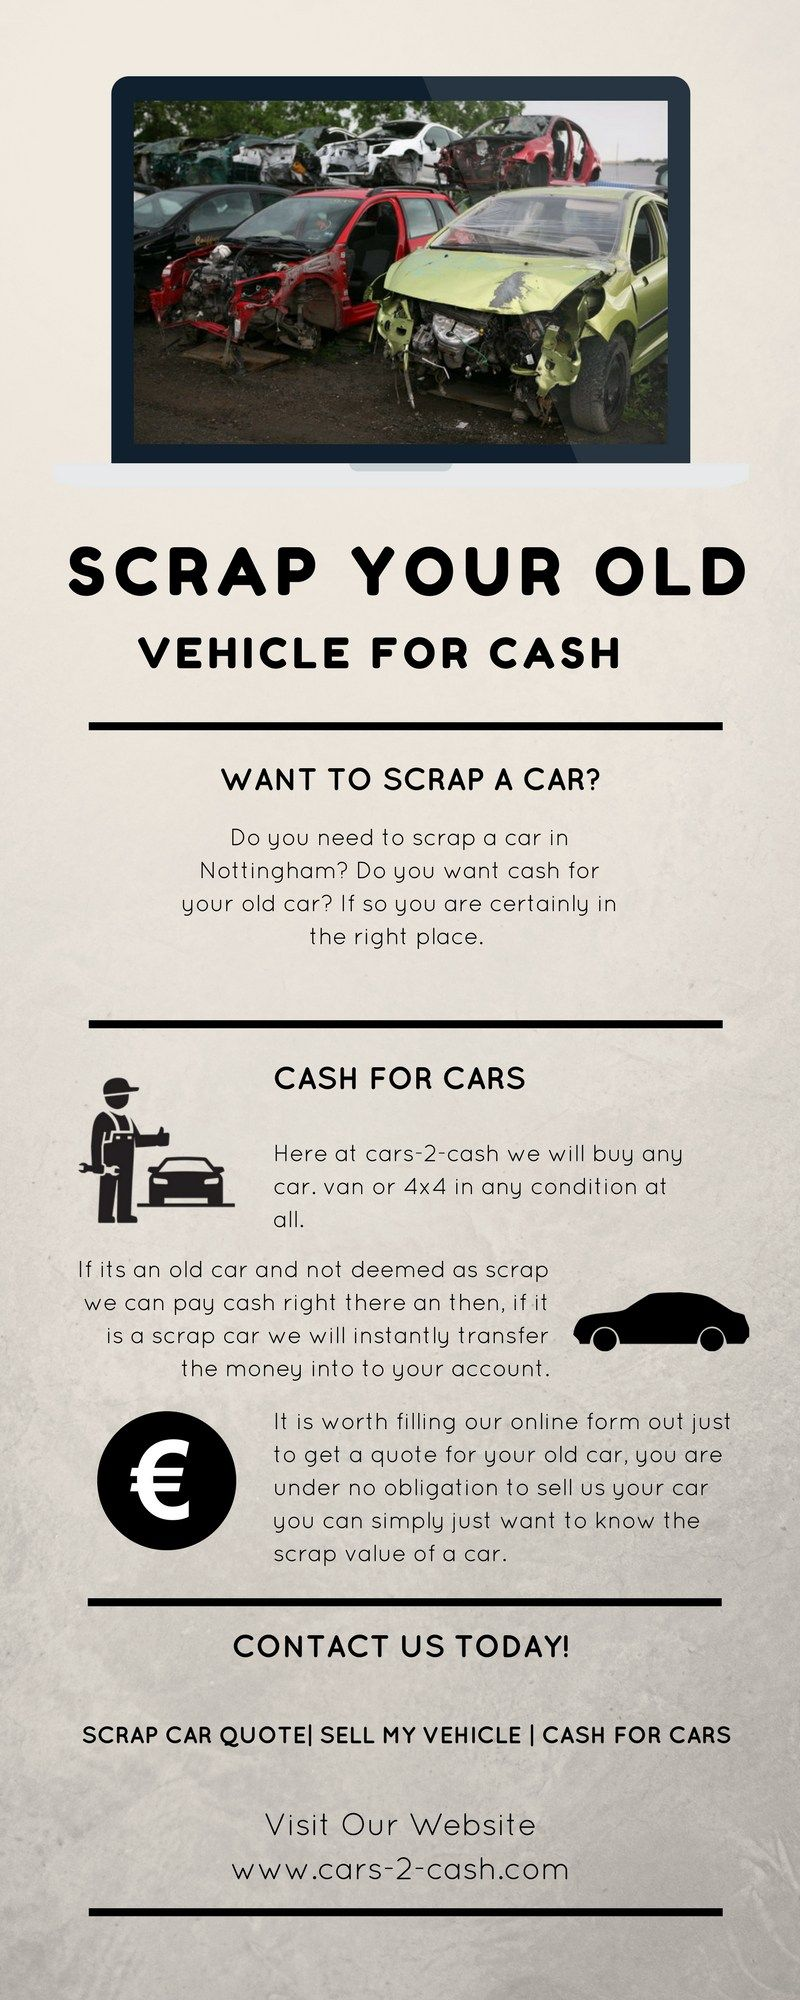 Cash For Cars Online Quote Scrap Old Vehicle For Cash Httpswww.liveinfographiciscrap